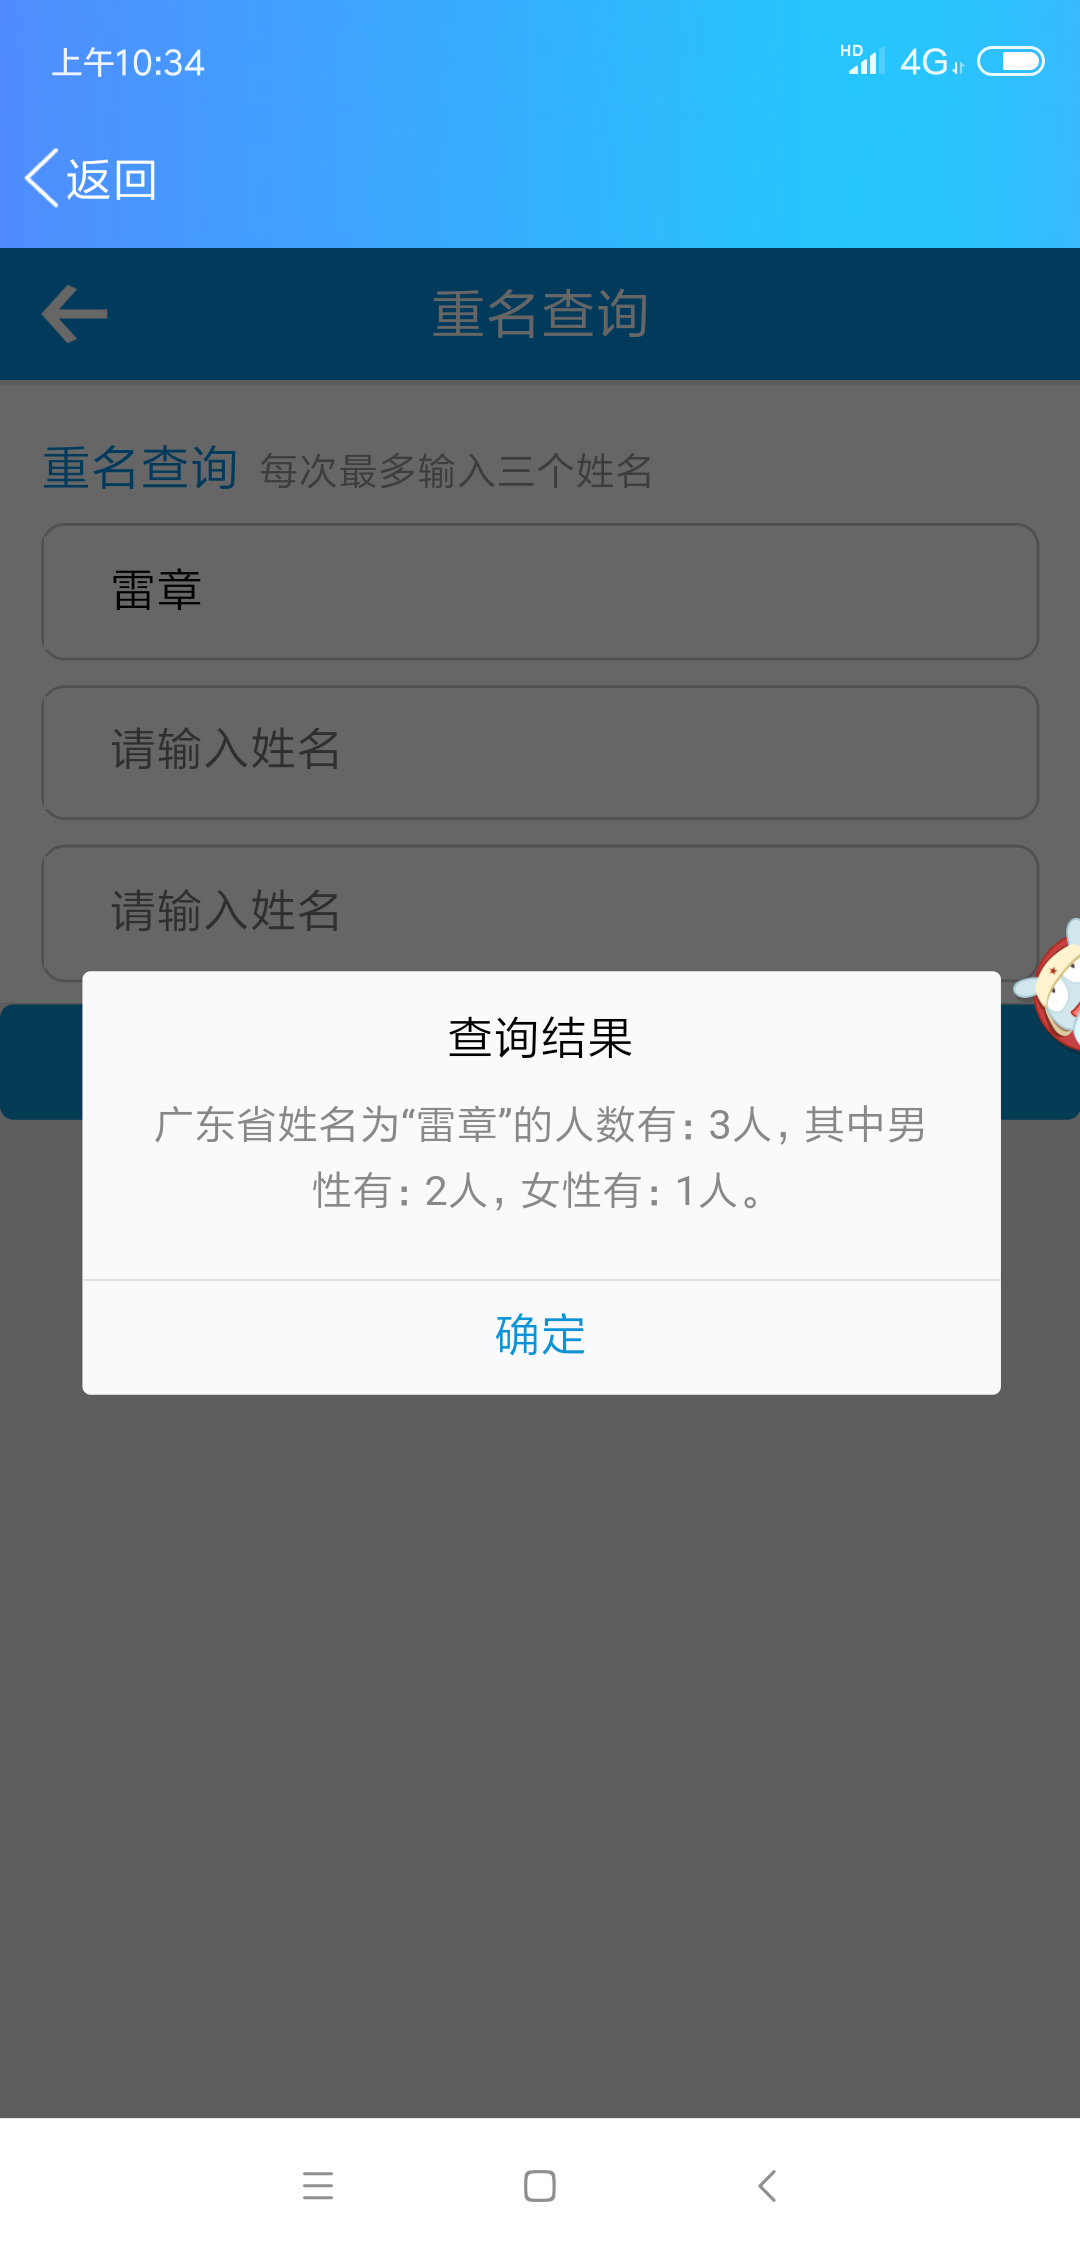 Screenshot_2019-02-26-10-34-03-085_com.tencent.mobileqq.png